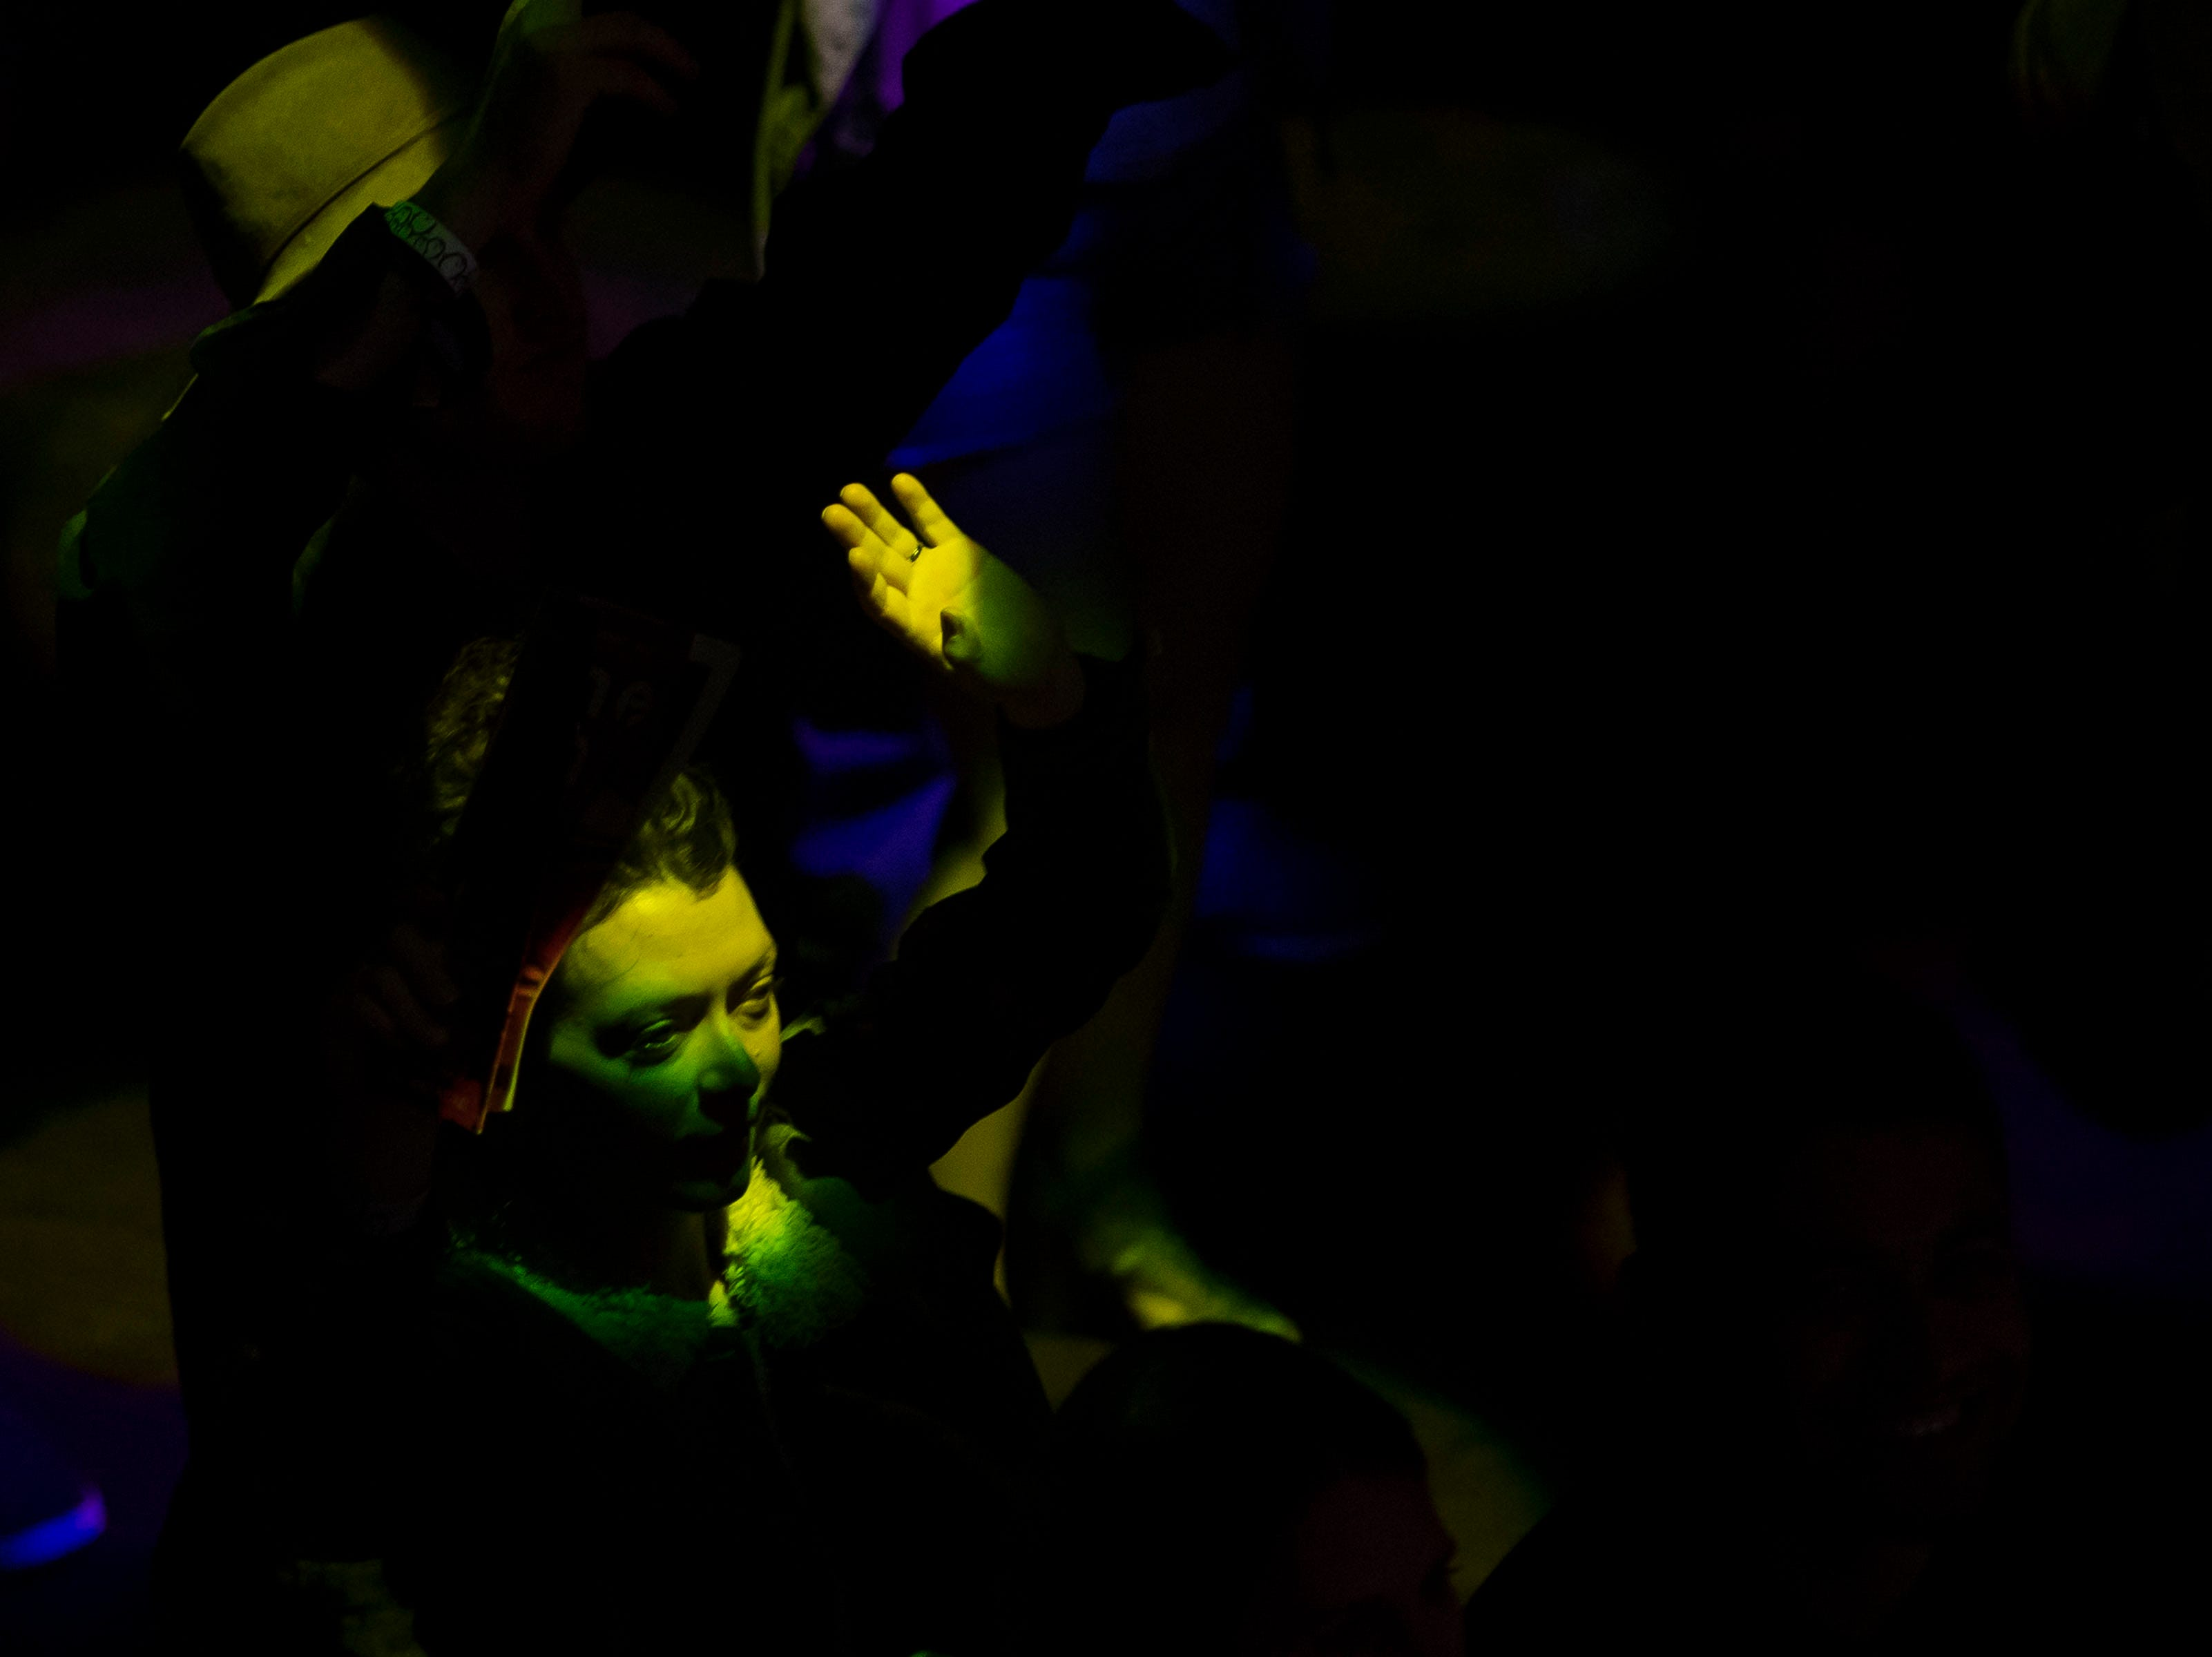 Audience members dance as Los Mocochetes performs at Washington's during the FoCoMX XI music festival on Friday, April 26, 2019, in Fort Collins, Colo.